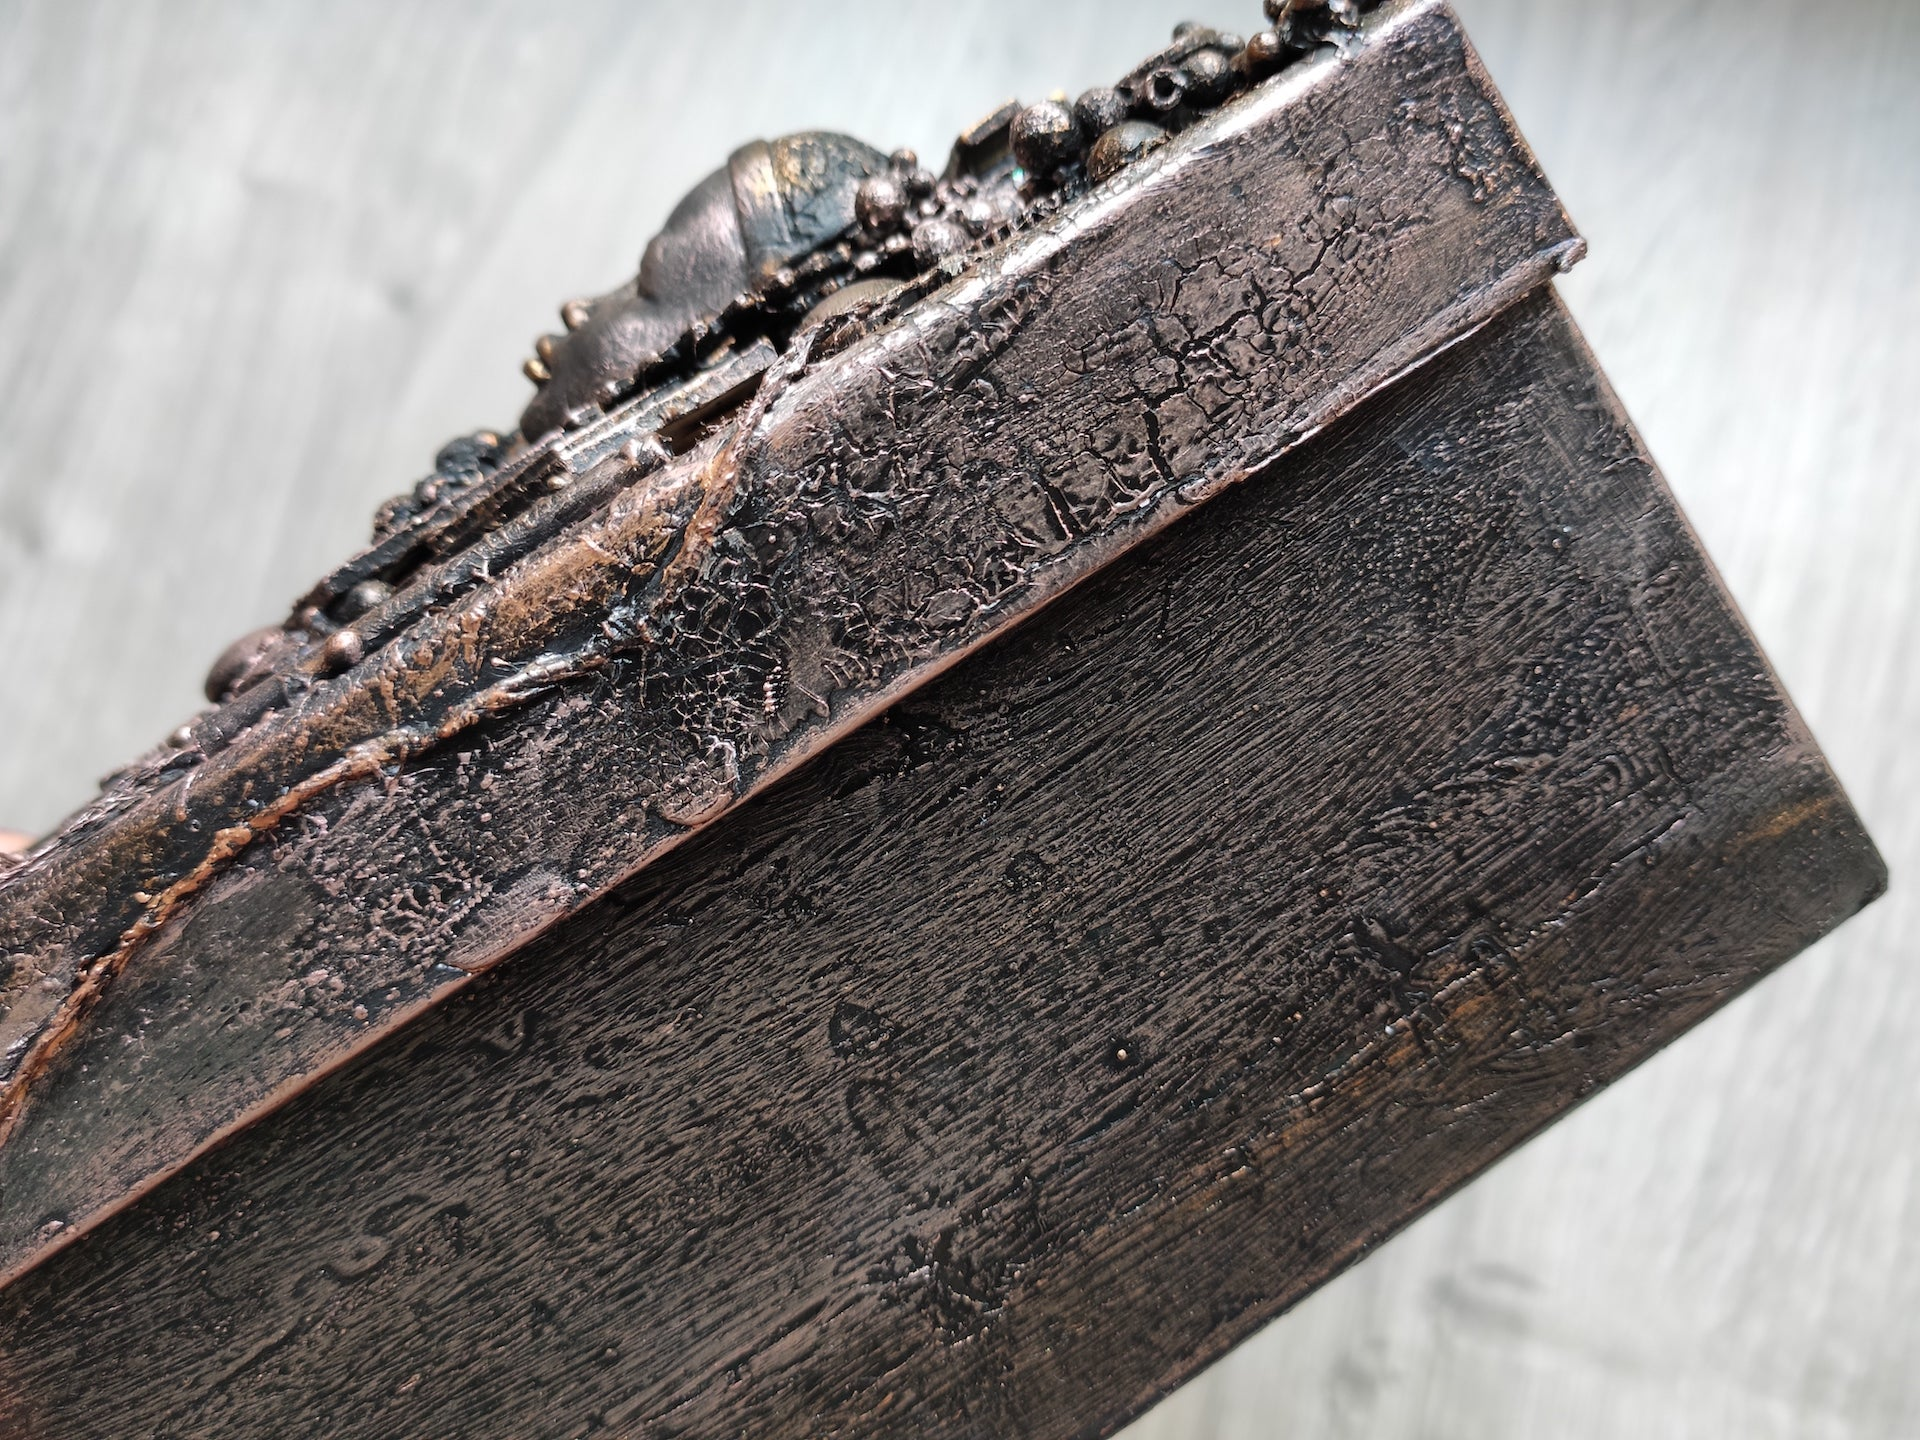 Handmade mixed media gift box- Steampunk/Industrial